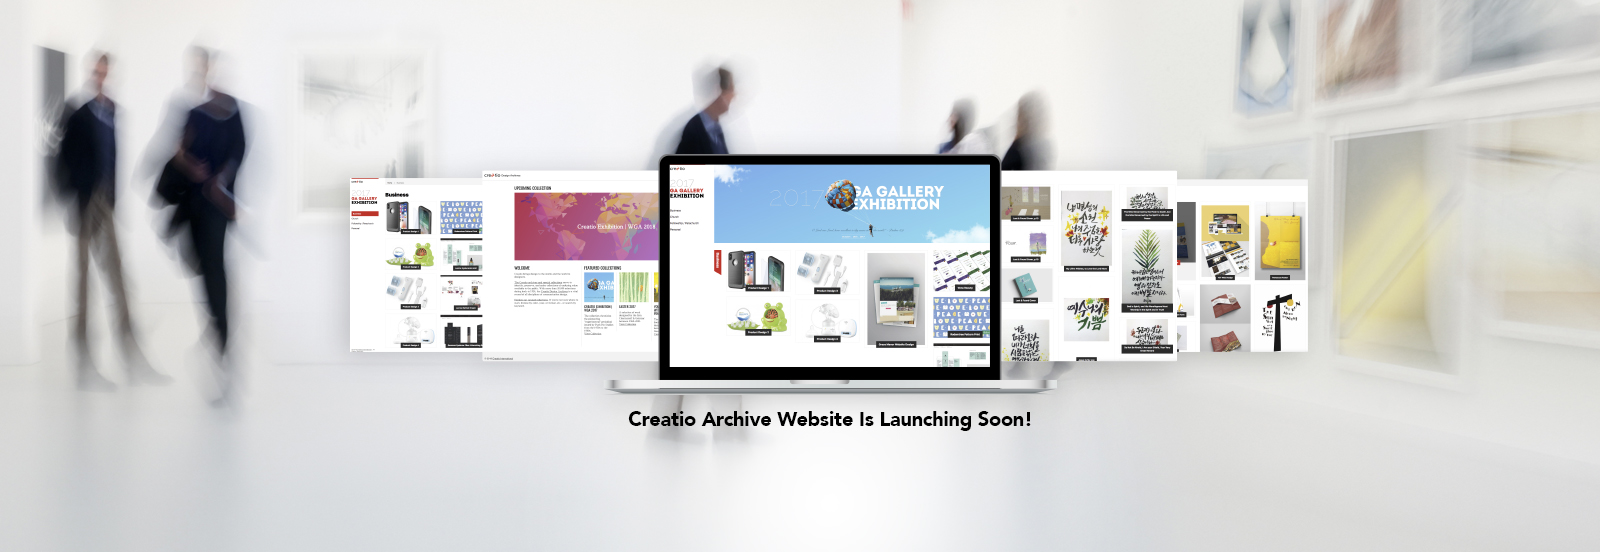 Creatio Archive Website Is Launching Soon